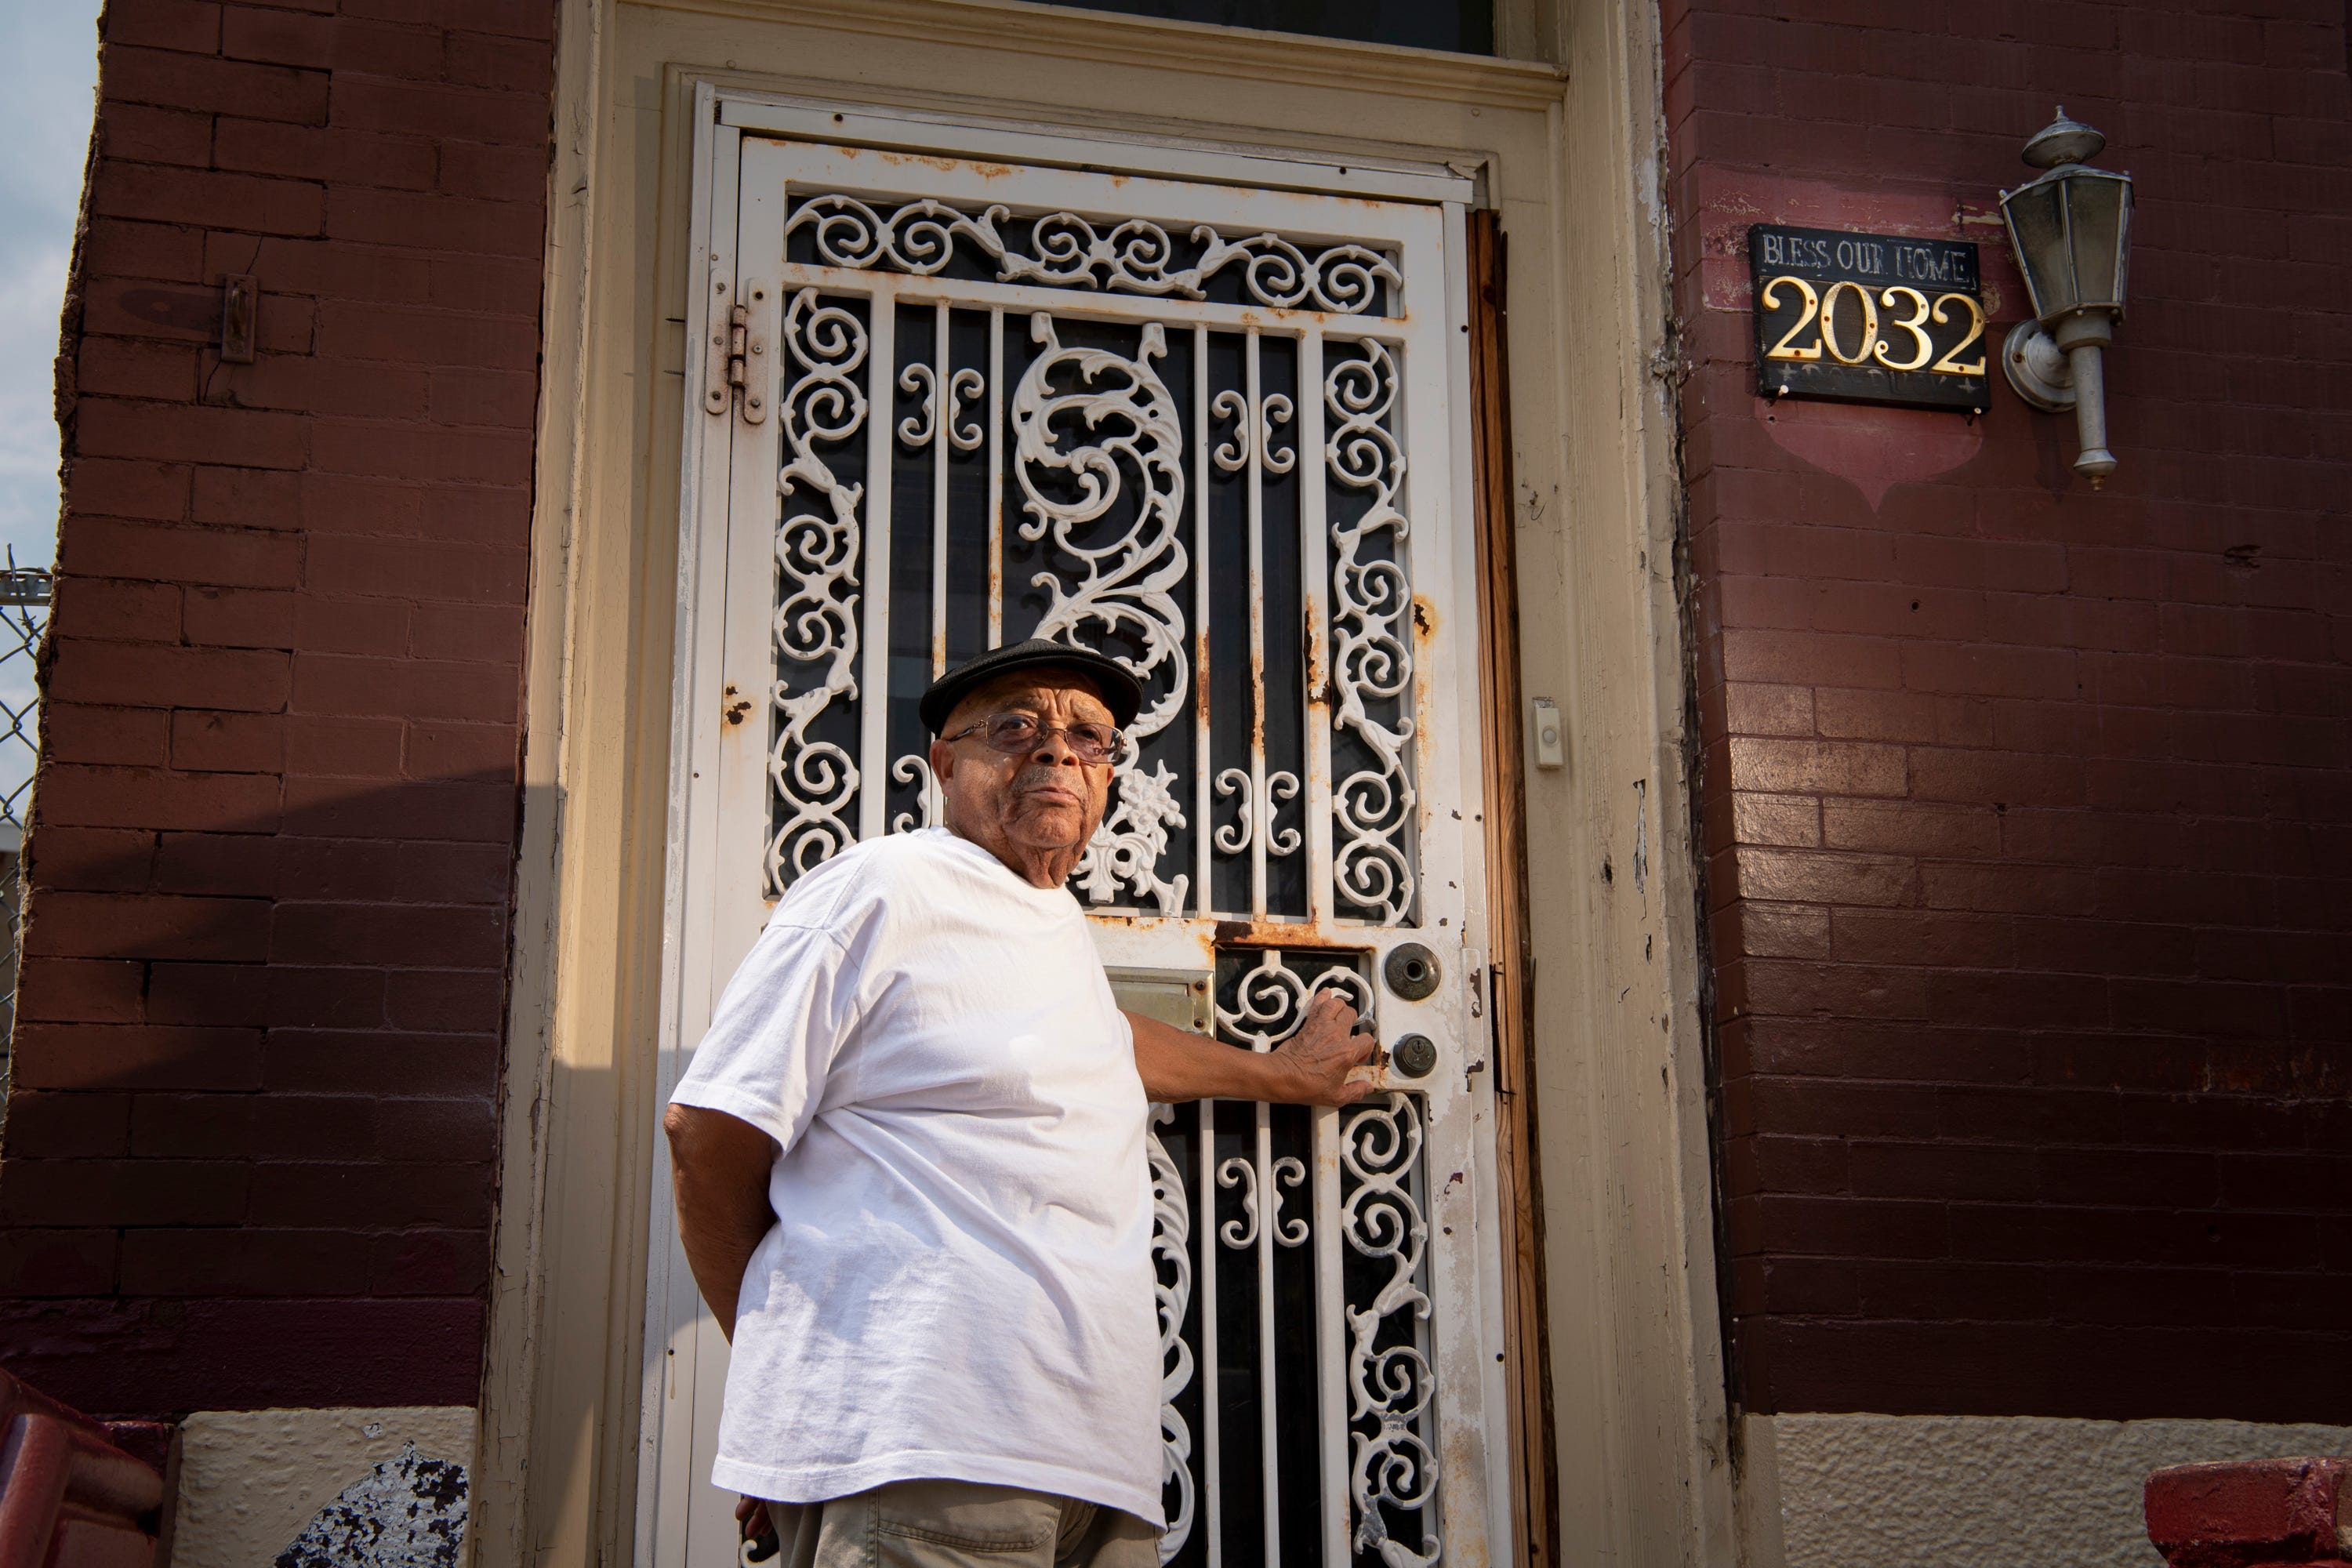 Leroy Roebuck, 86, of Philadelphia, is fighting to keep his home of at least 55 years where he raised all his kids.